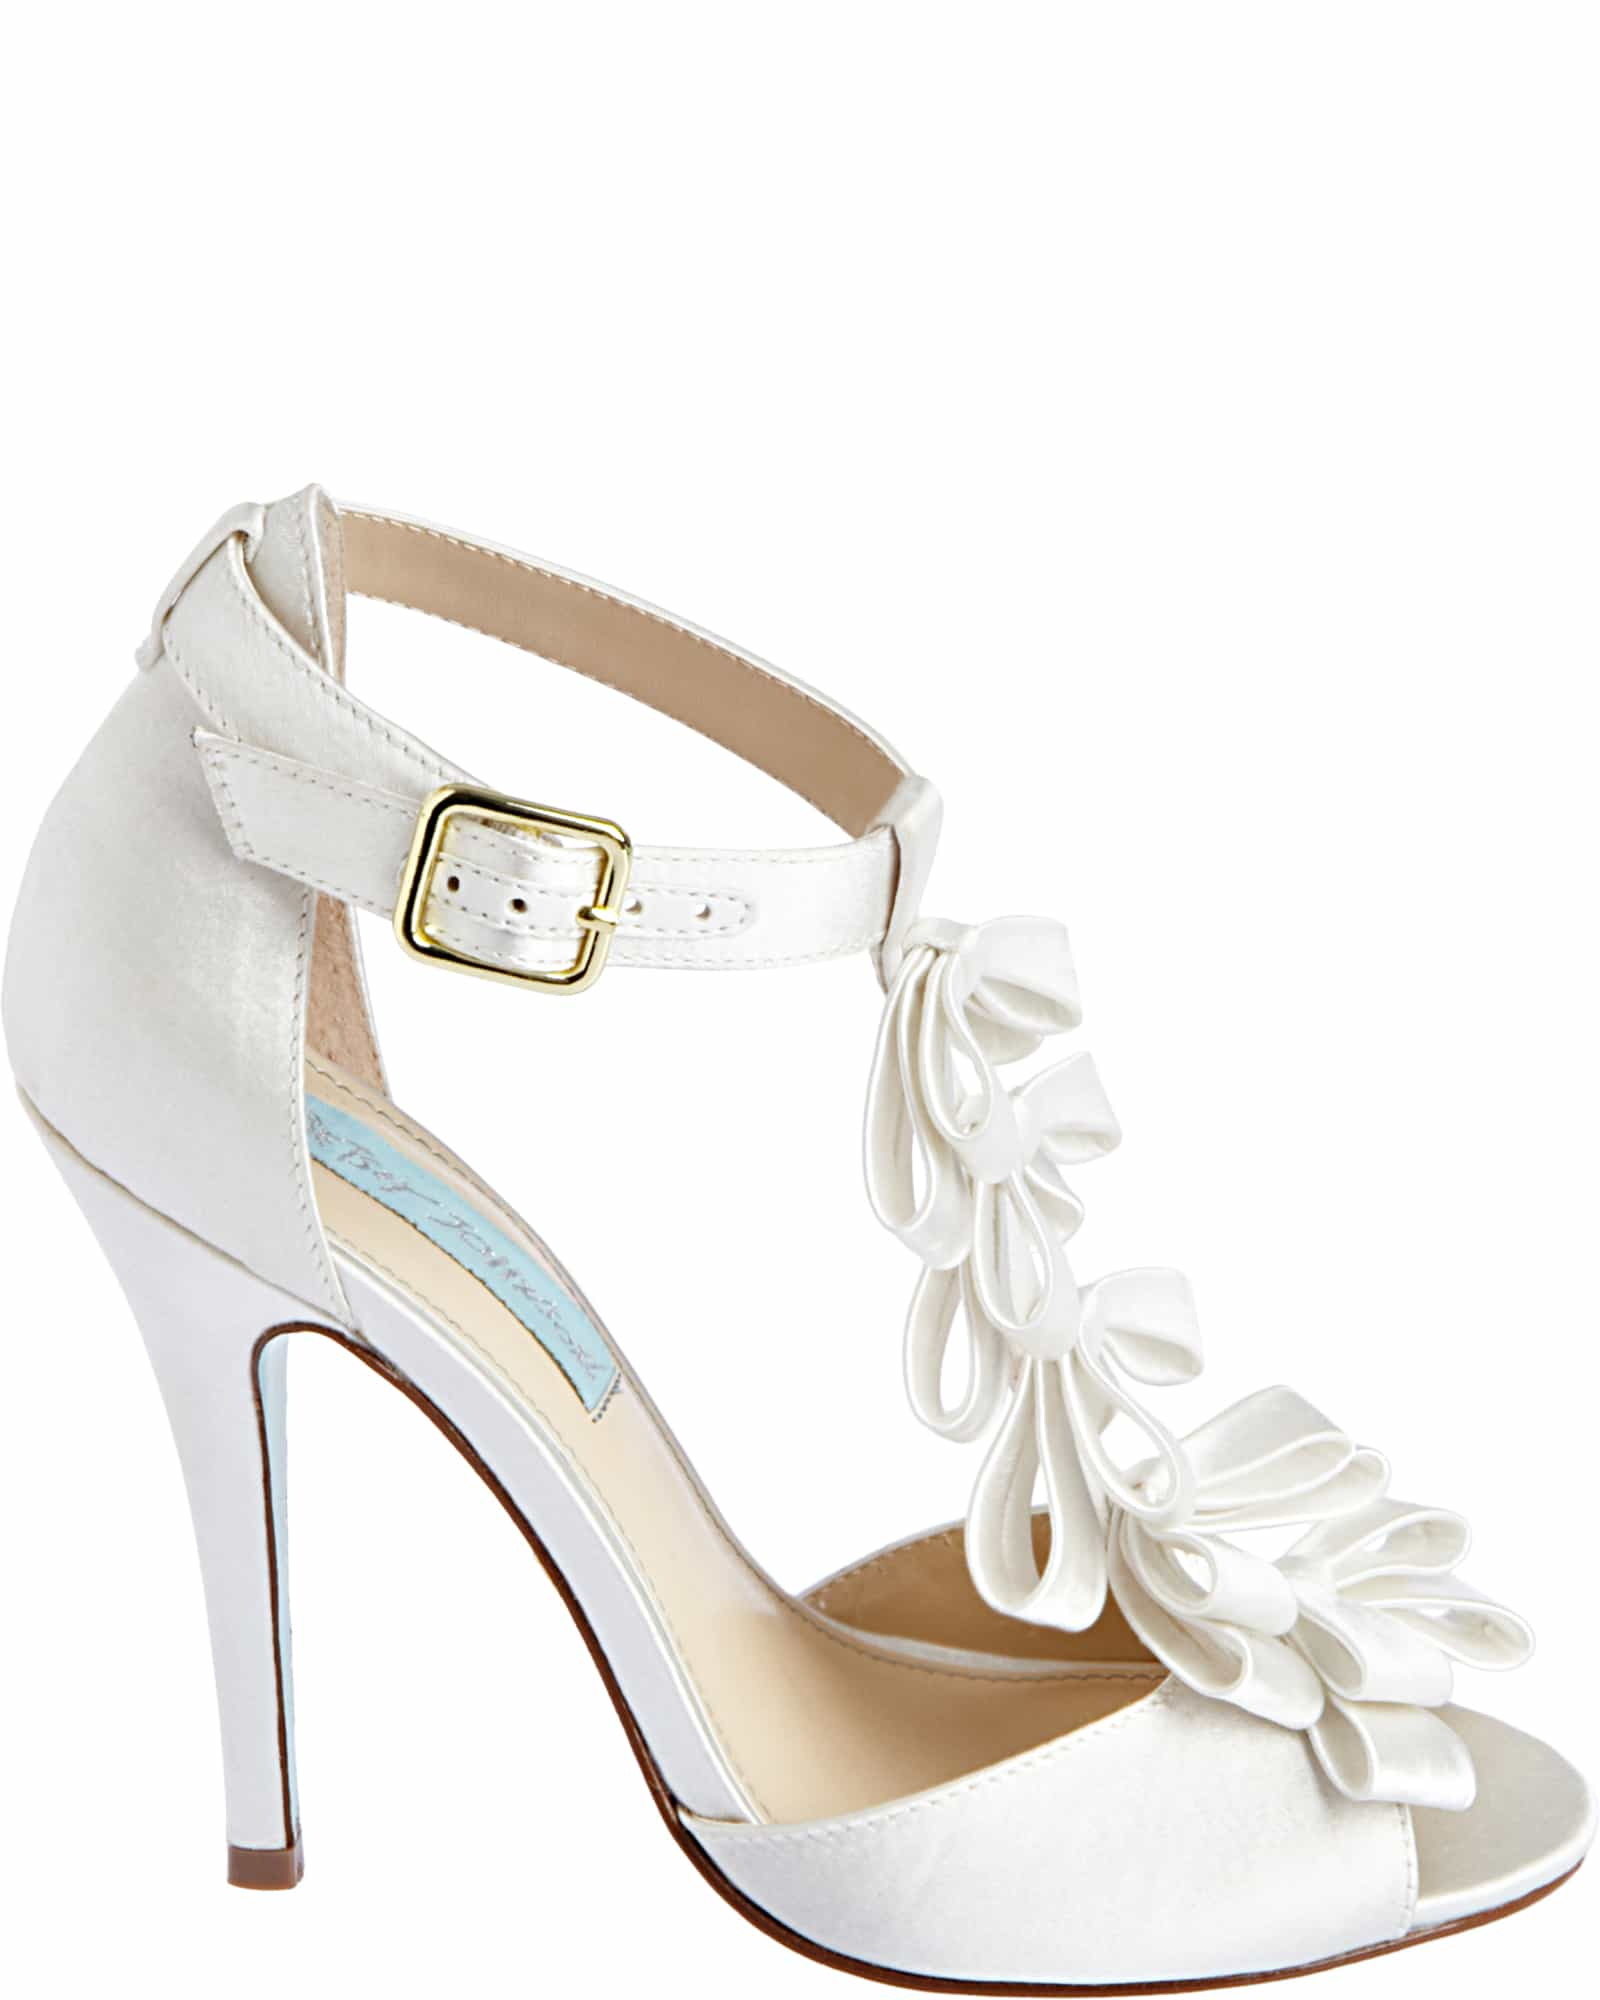 Betsey JohnsonSB-KNOT_IVORY-SATIN_SIDE